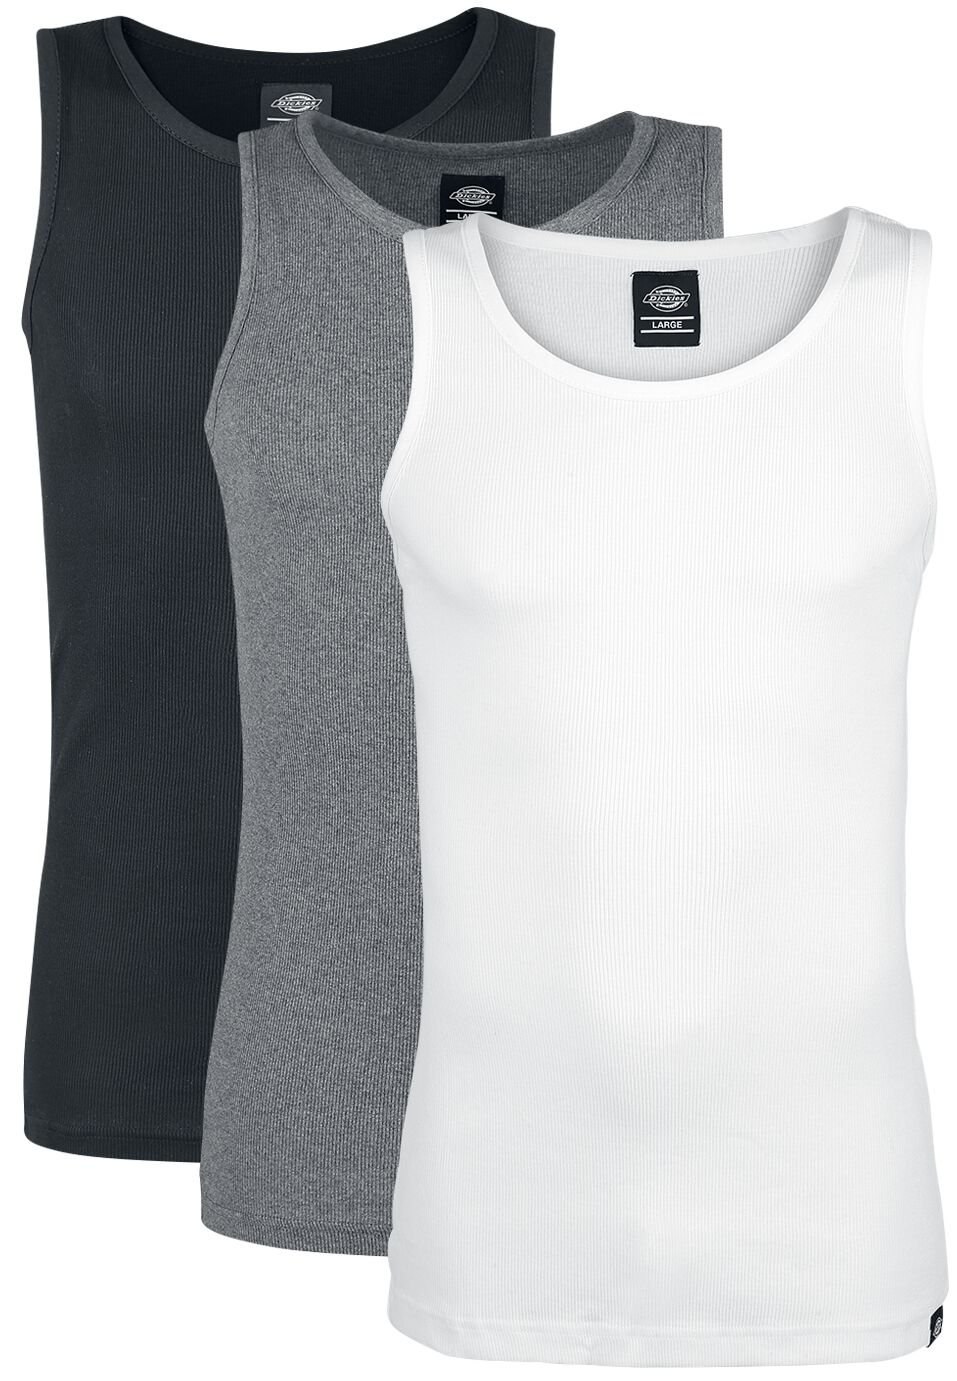 Image of   Dickies Proof Multi -Colour(3er-Pack) Tanktop-sæt sort-grå-hvid